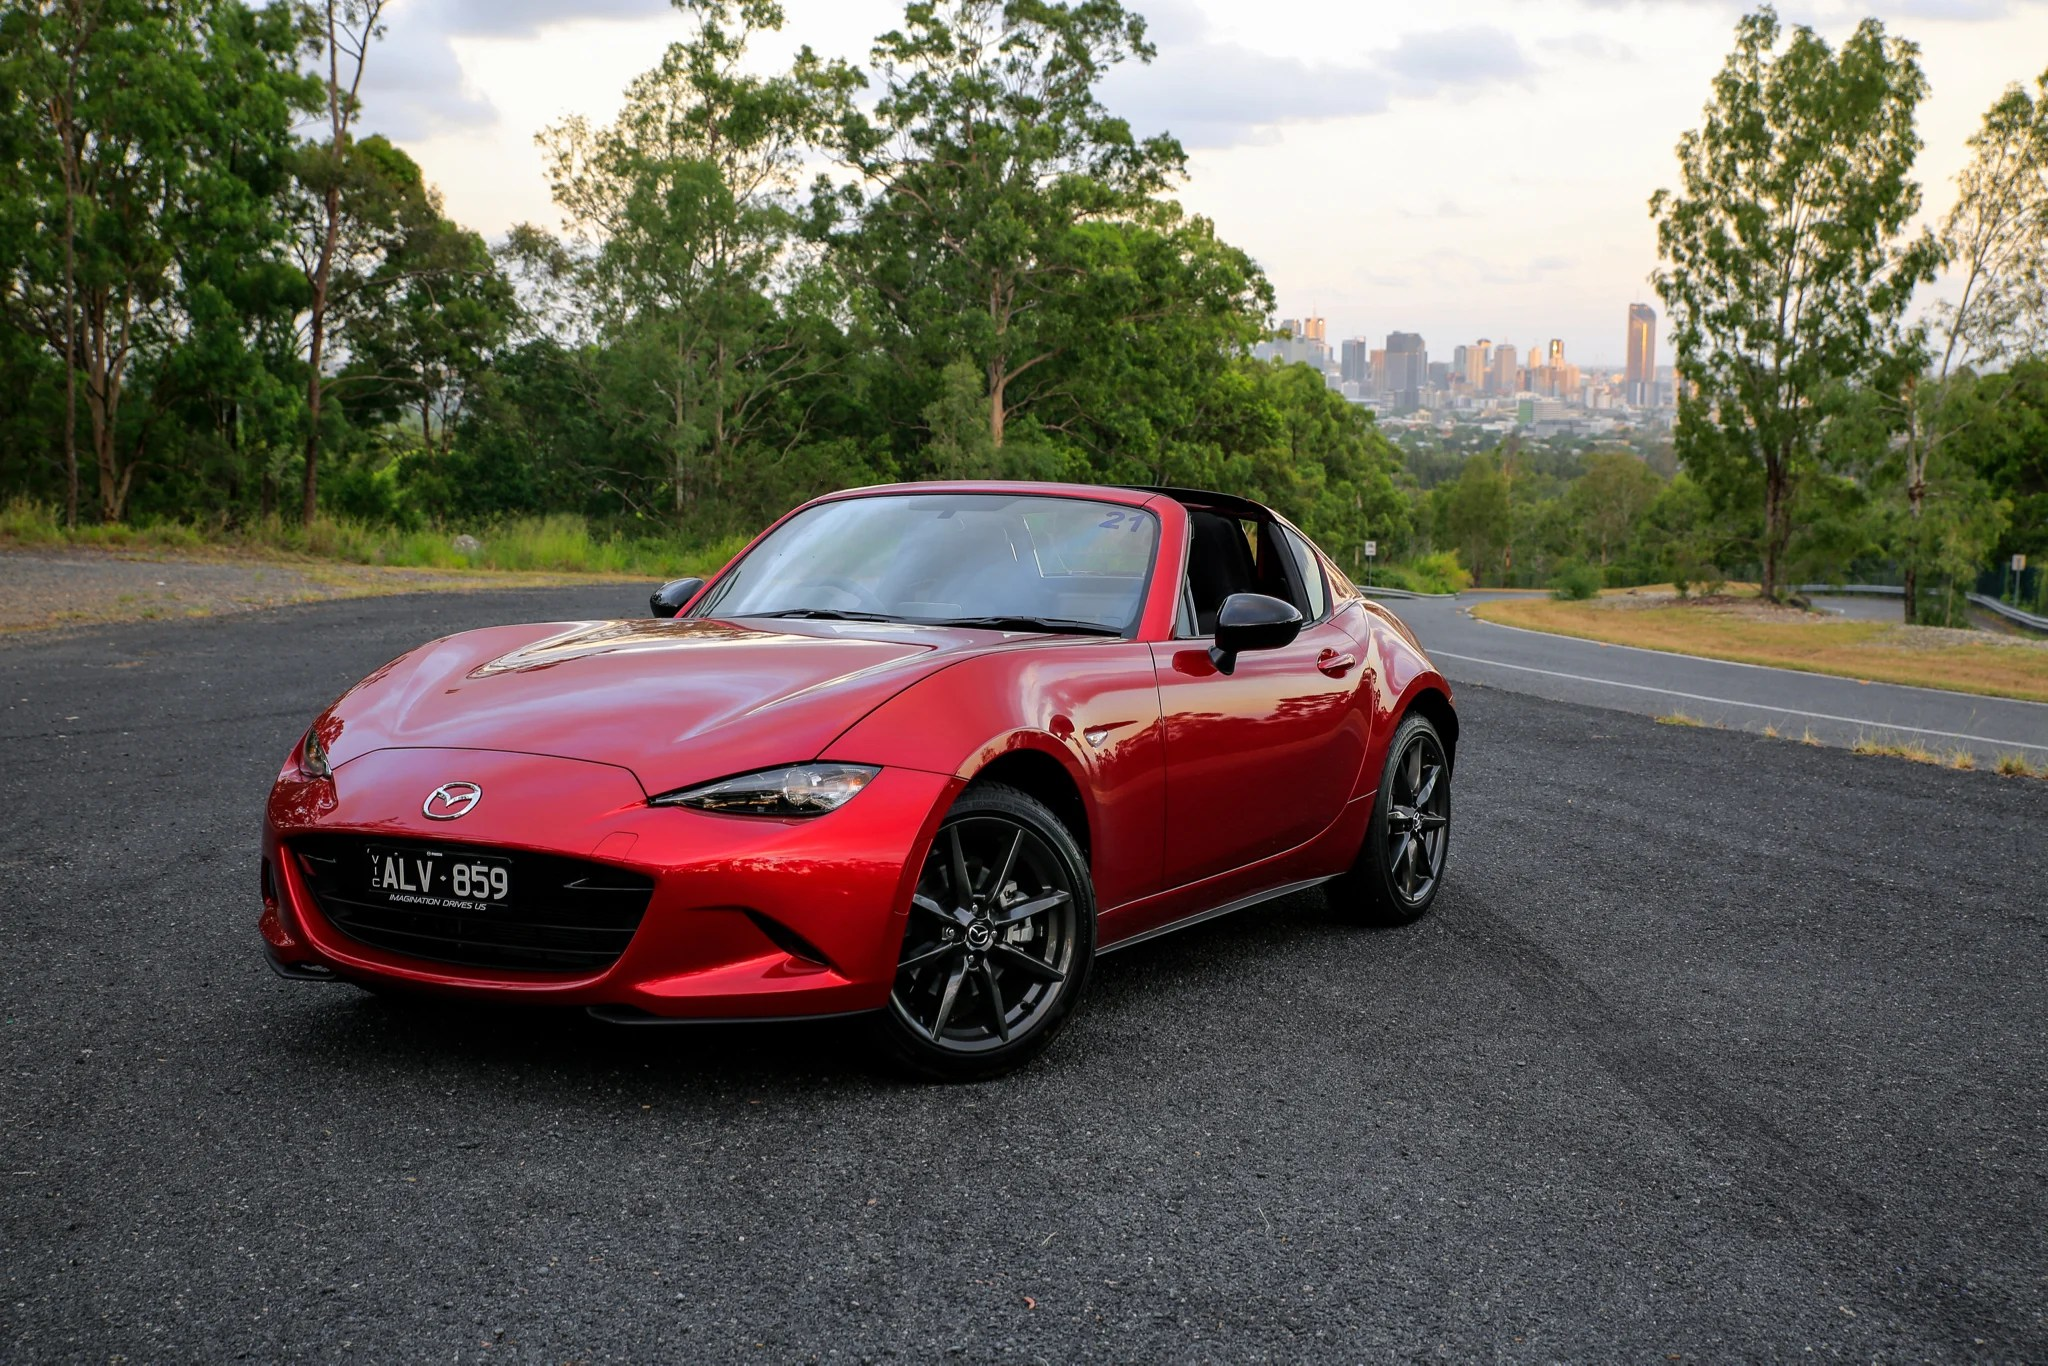 Mazda Mx5 Rf Mazda Mx 5 Rf Vs Mazda Mx 5 Comparison Photos